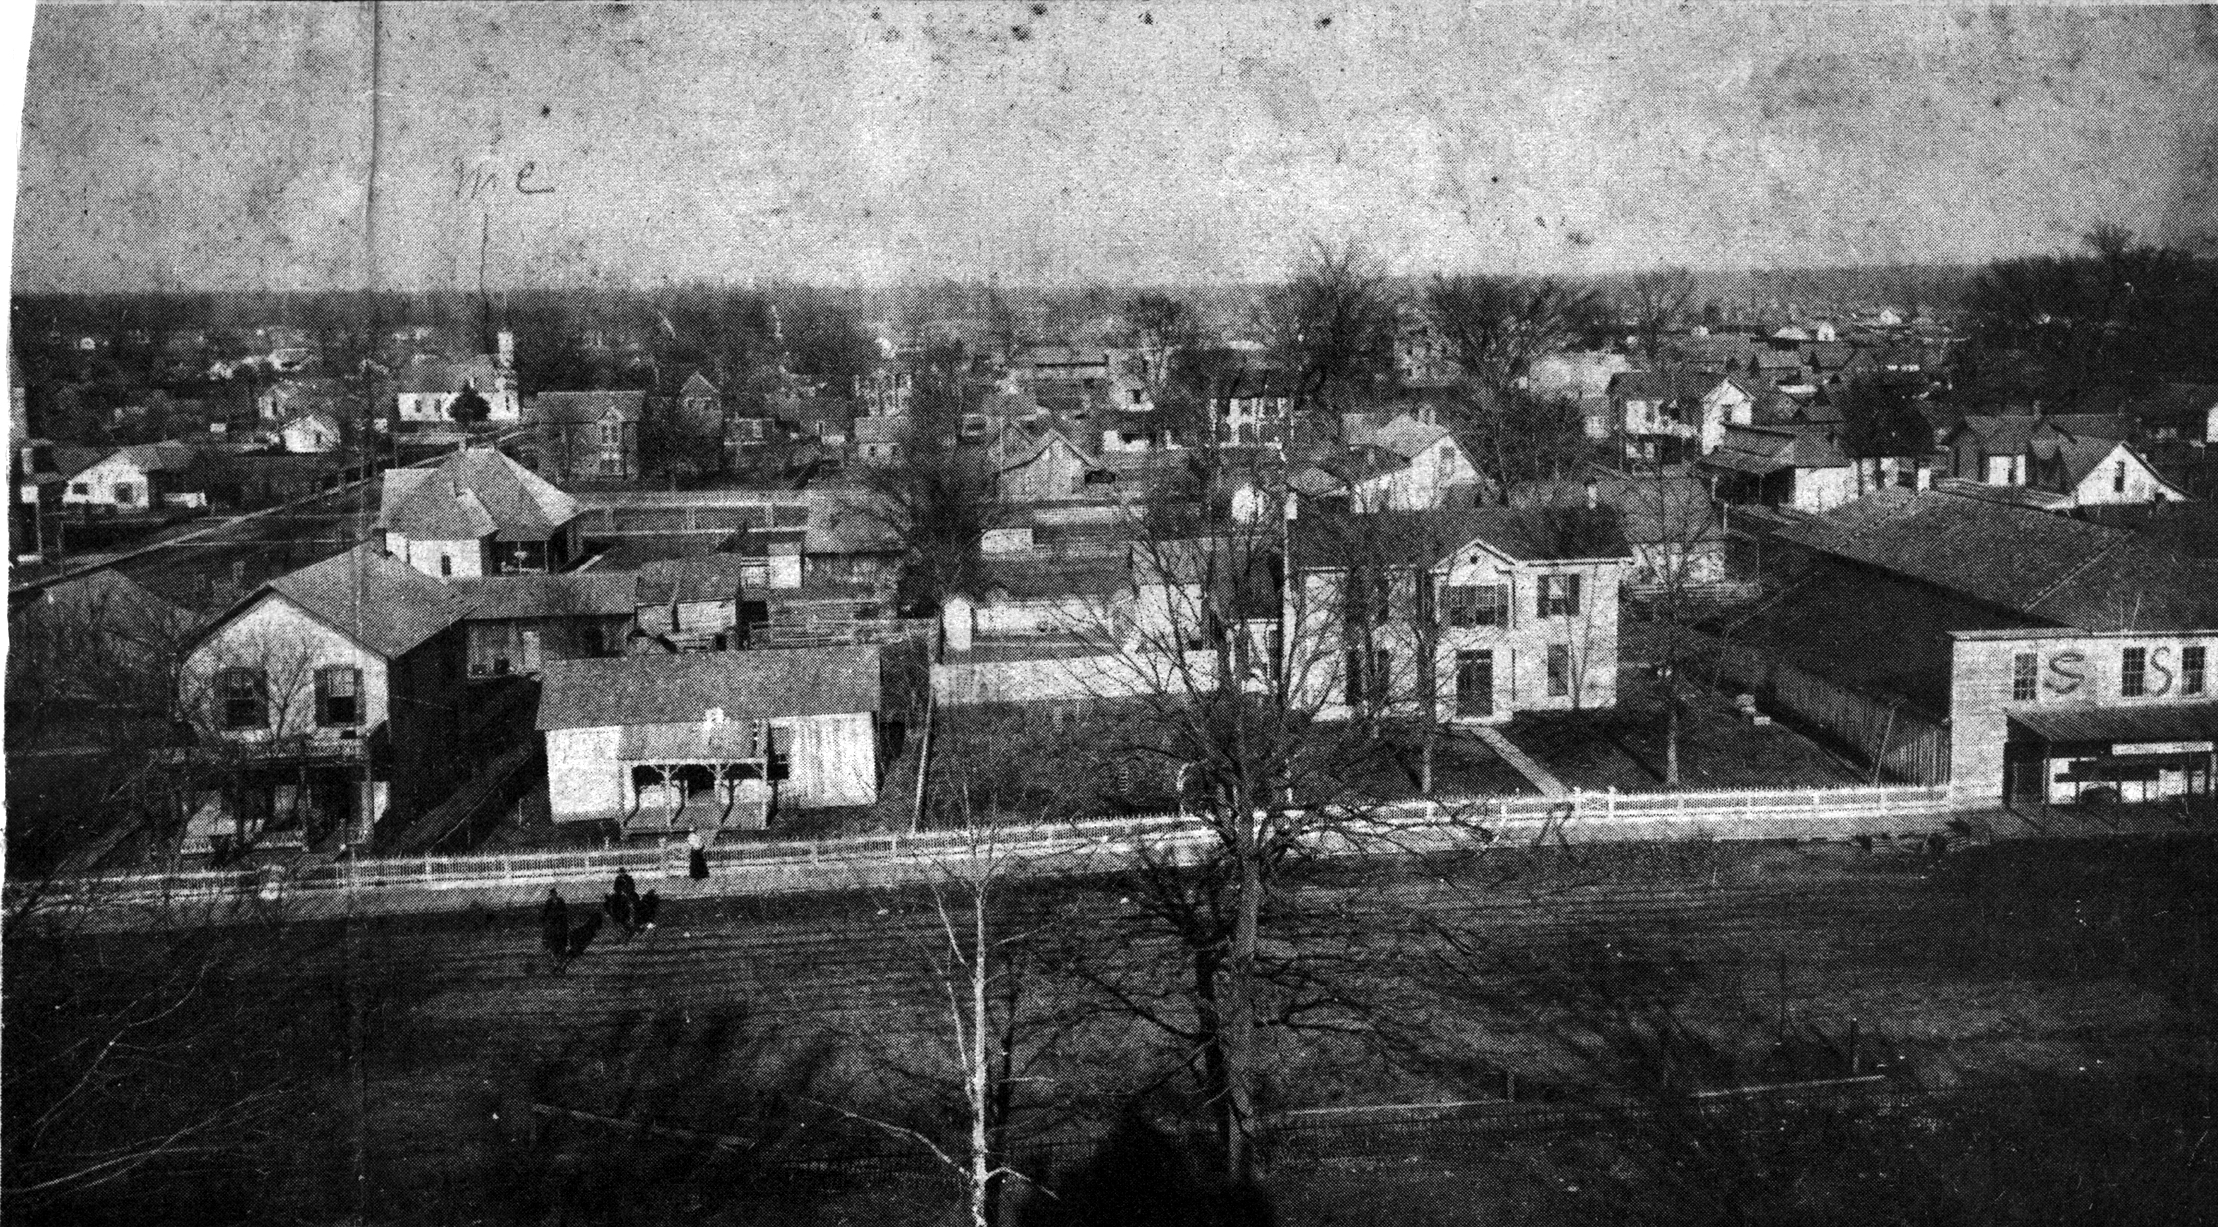 A picture of the Sheeks House and the Sheeks-Stephens Store taken from the courthouse tower.